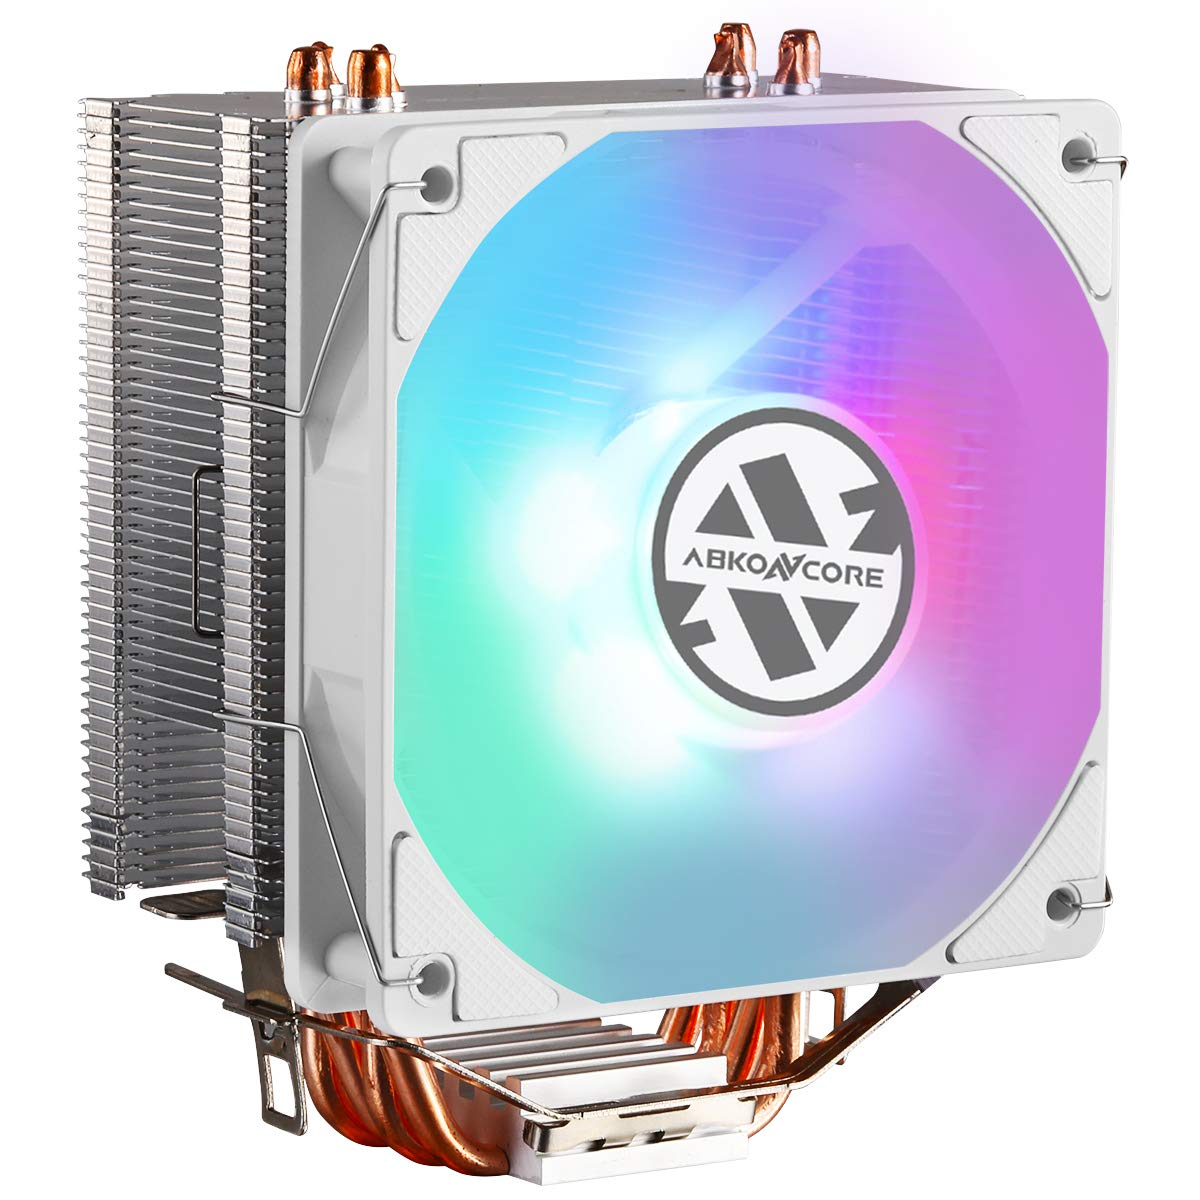 CPU Cooler ABKONCORE CT405W AIR With 120mm PWM Silent Fan 4